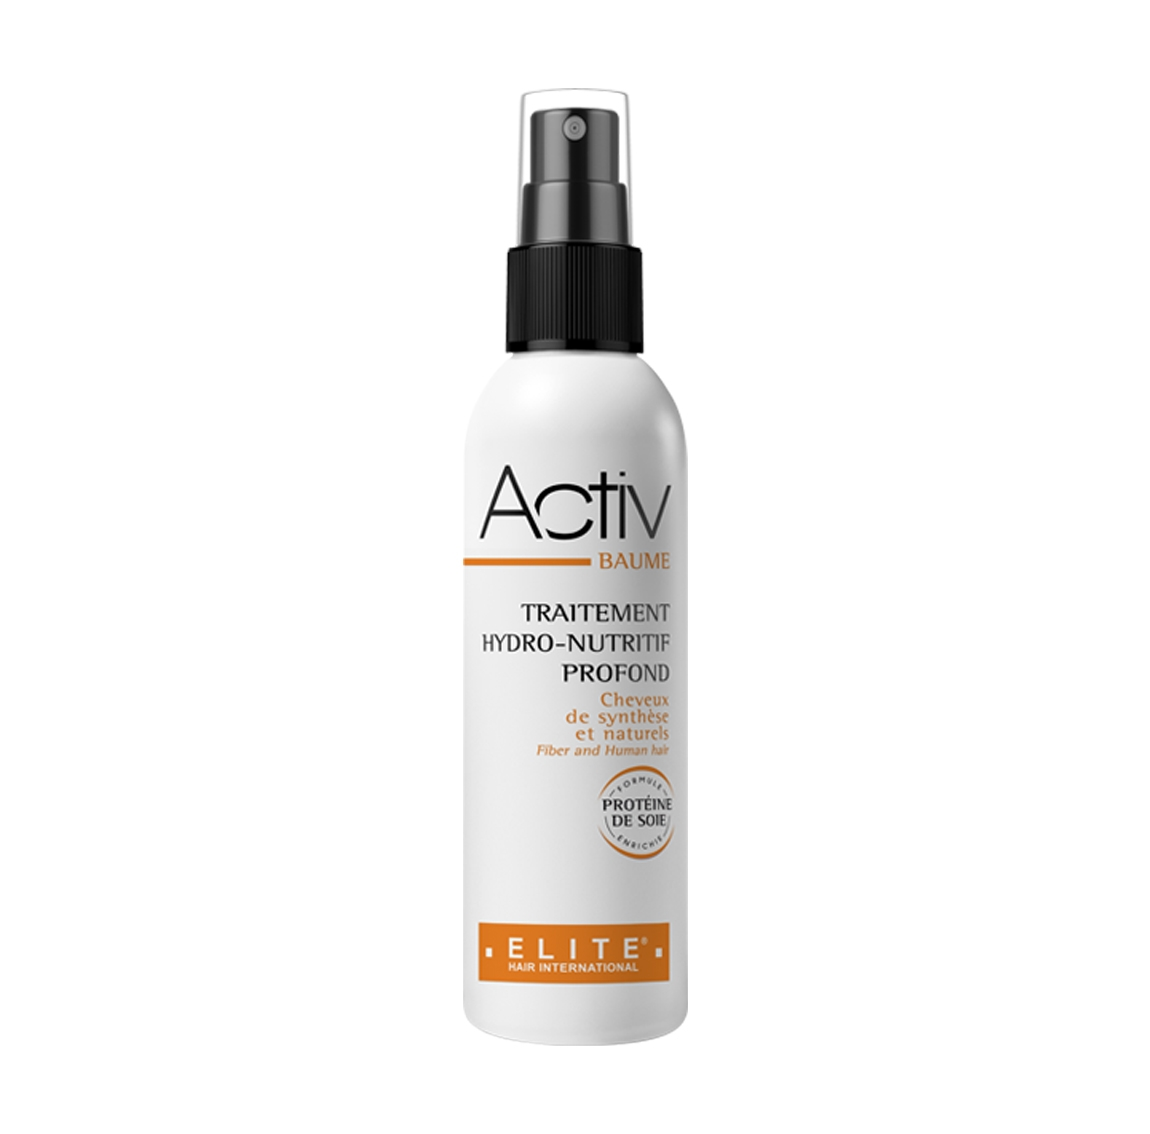 Activ baume, entretien perruque synthétique naturelle, elite hair international